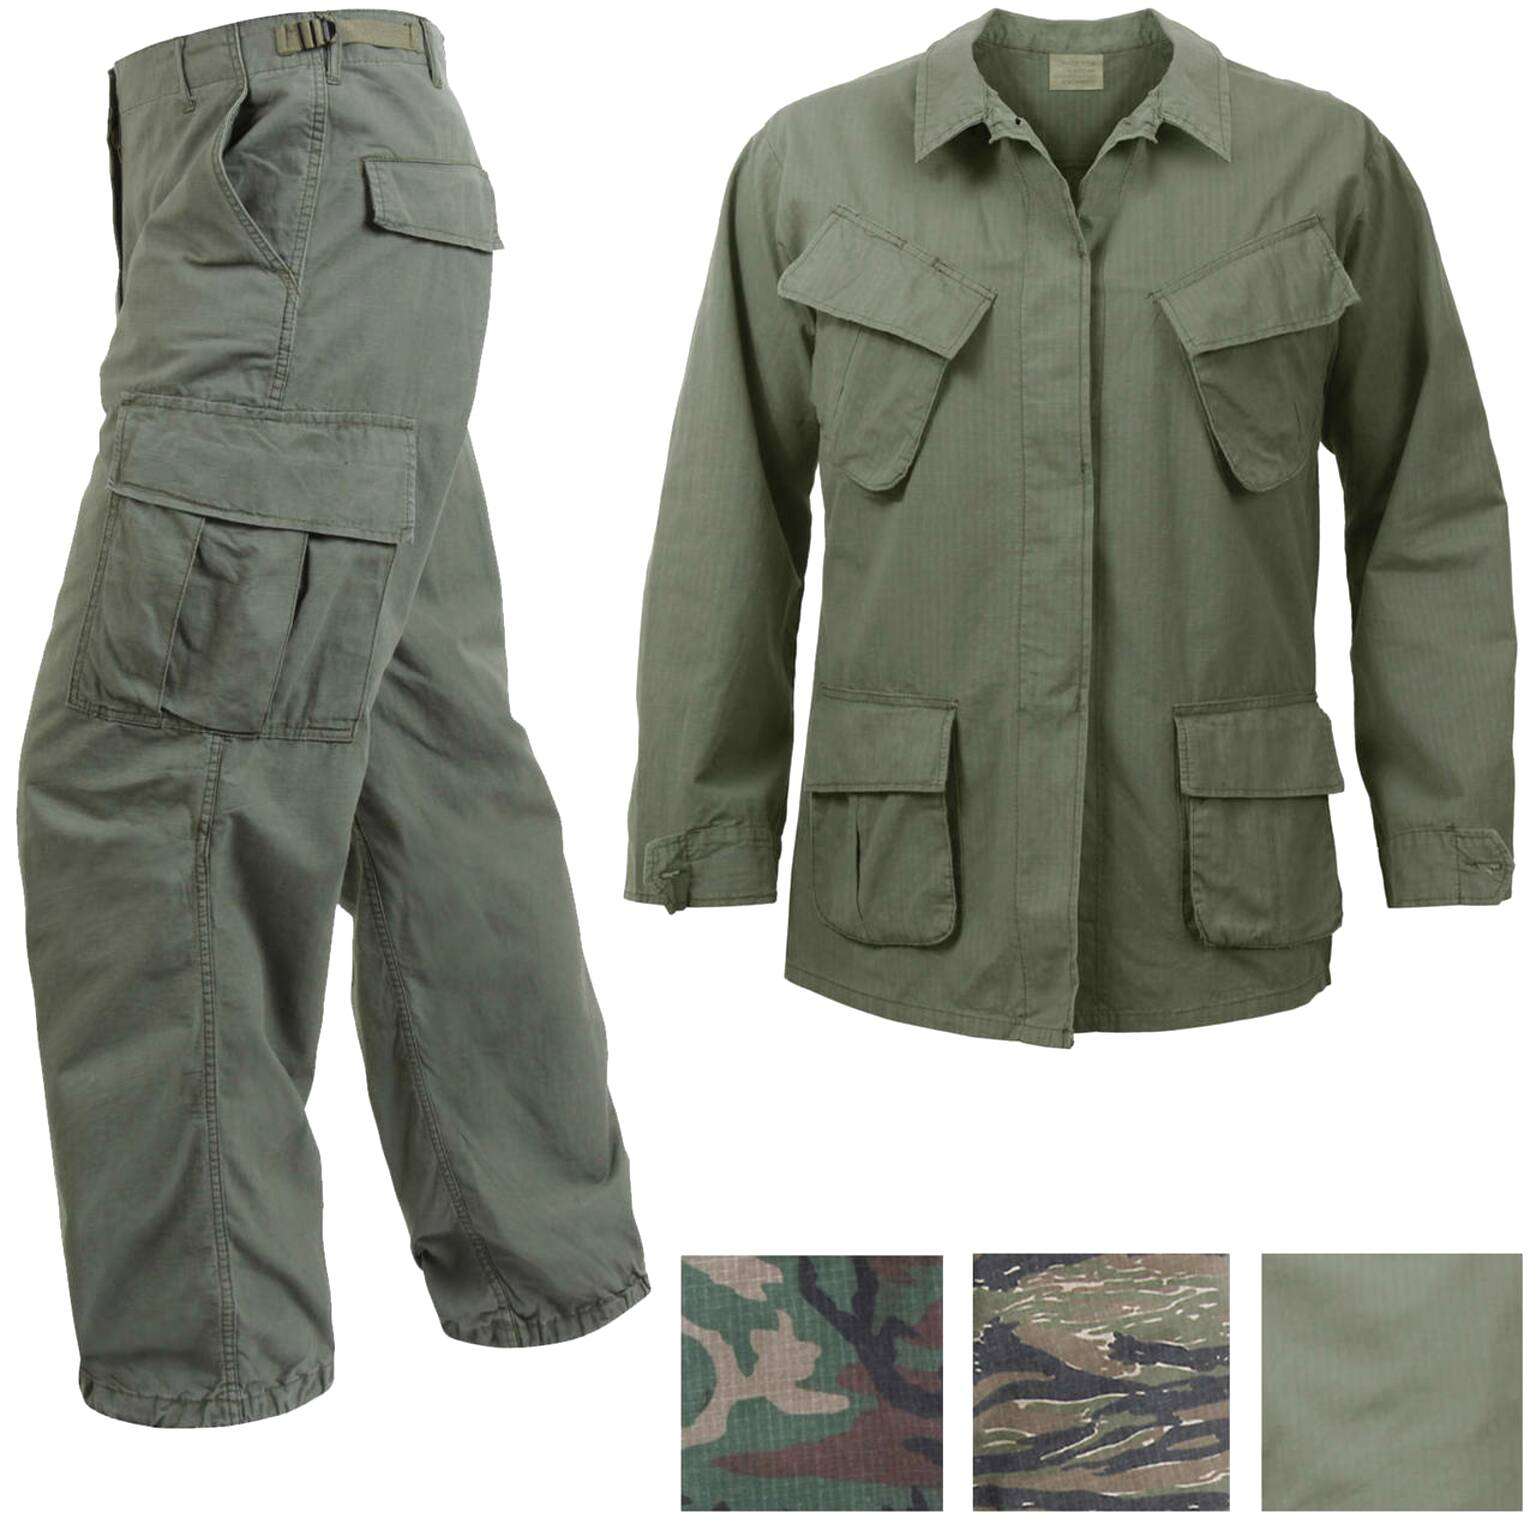 vietnam jungle fatigues for sale